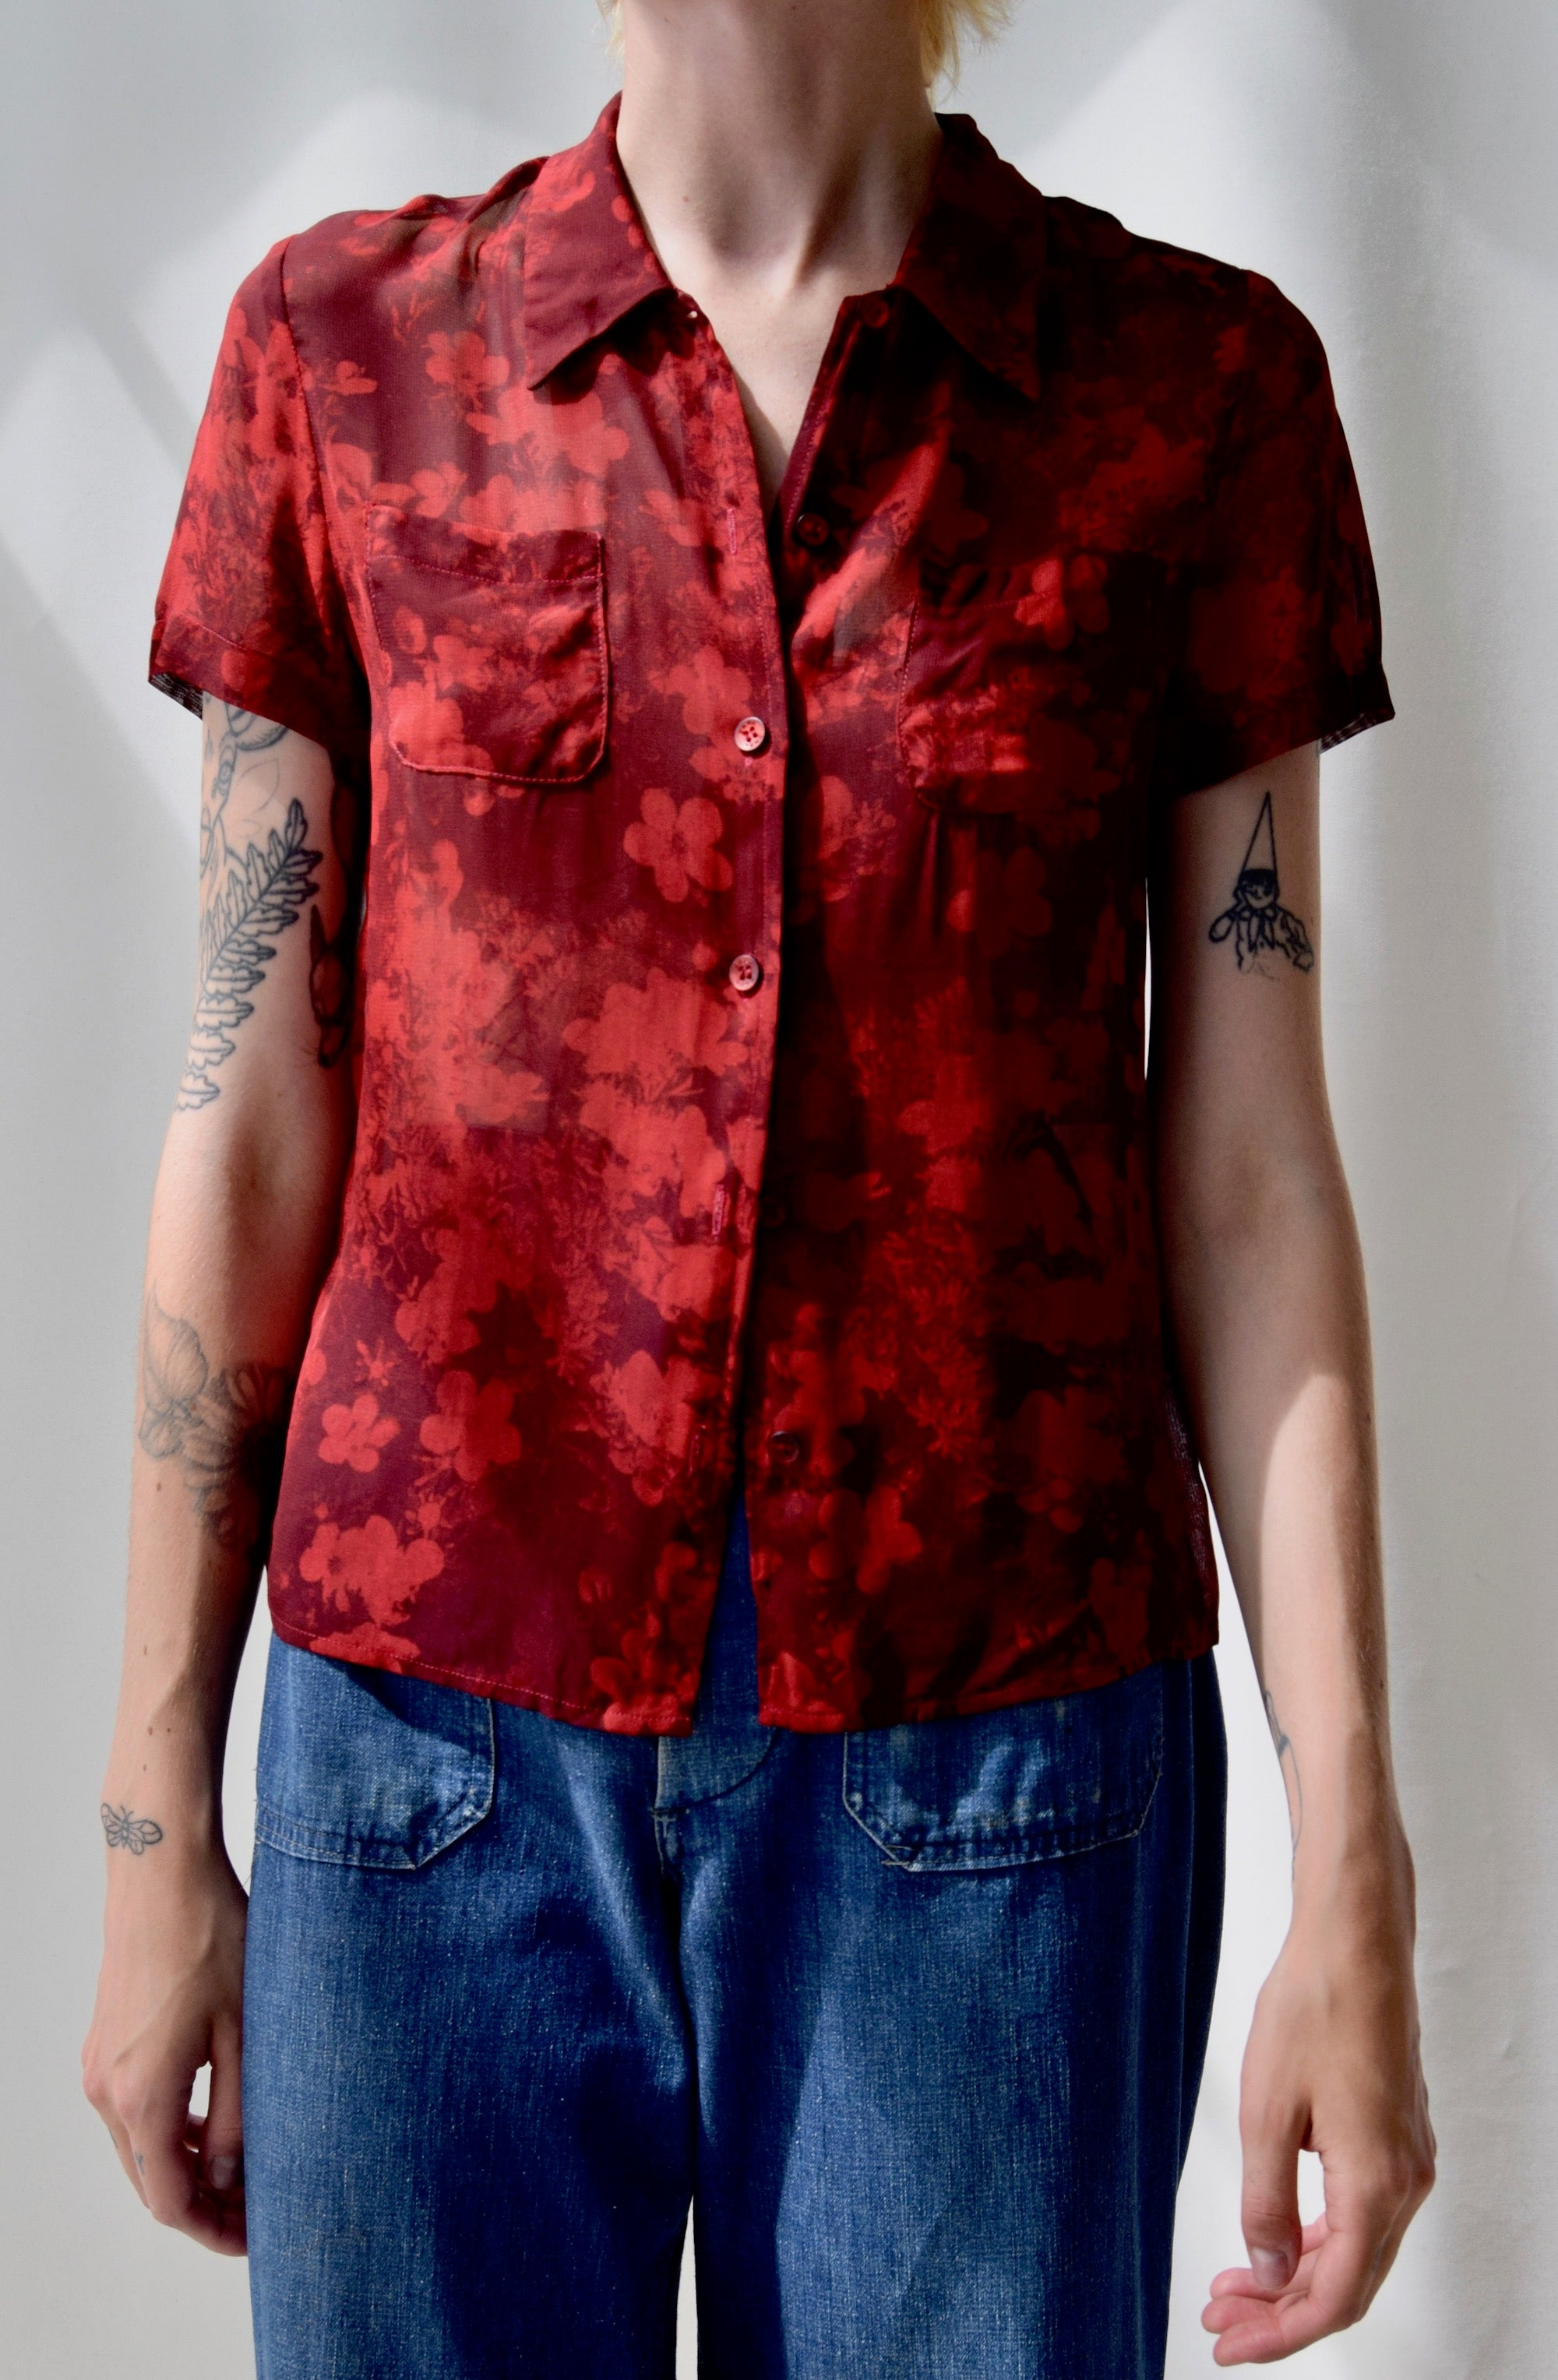 90's Two Tone Red Floral Rayon Top